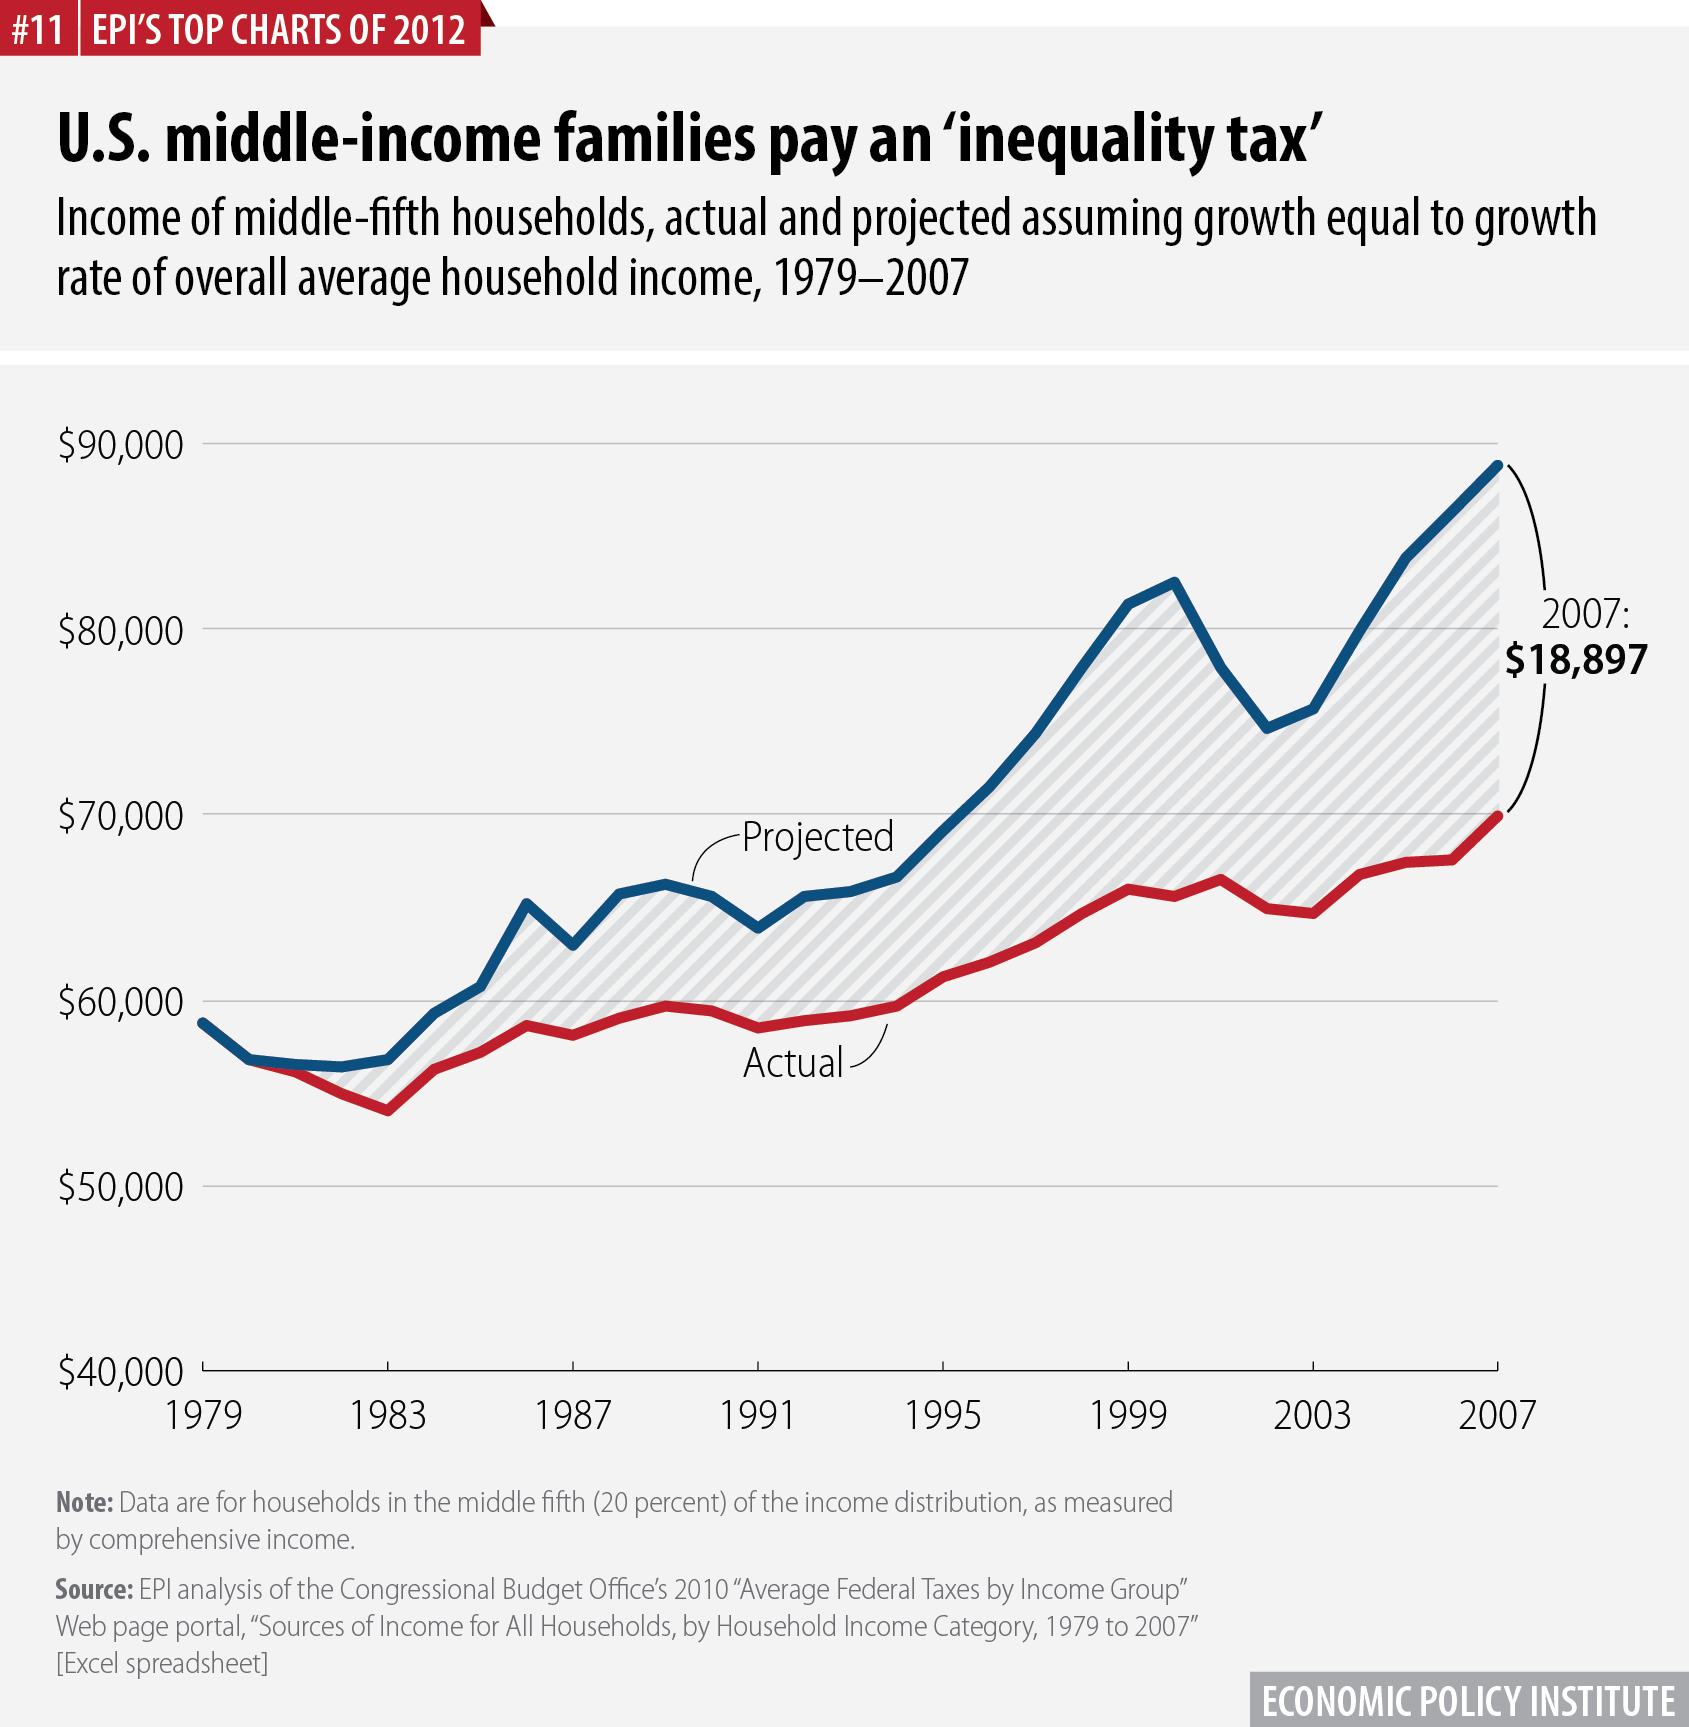 U.S. middle-income families pay an 'inequality tax' | Income of middle-fifth households, actual and projected assuming growth equal to growth rate of overall average household income, 1979–2007